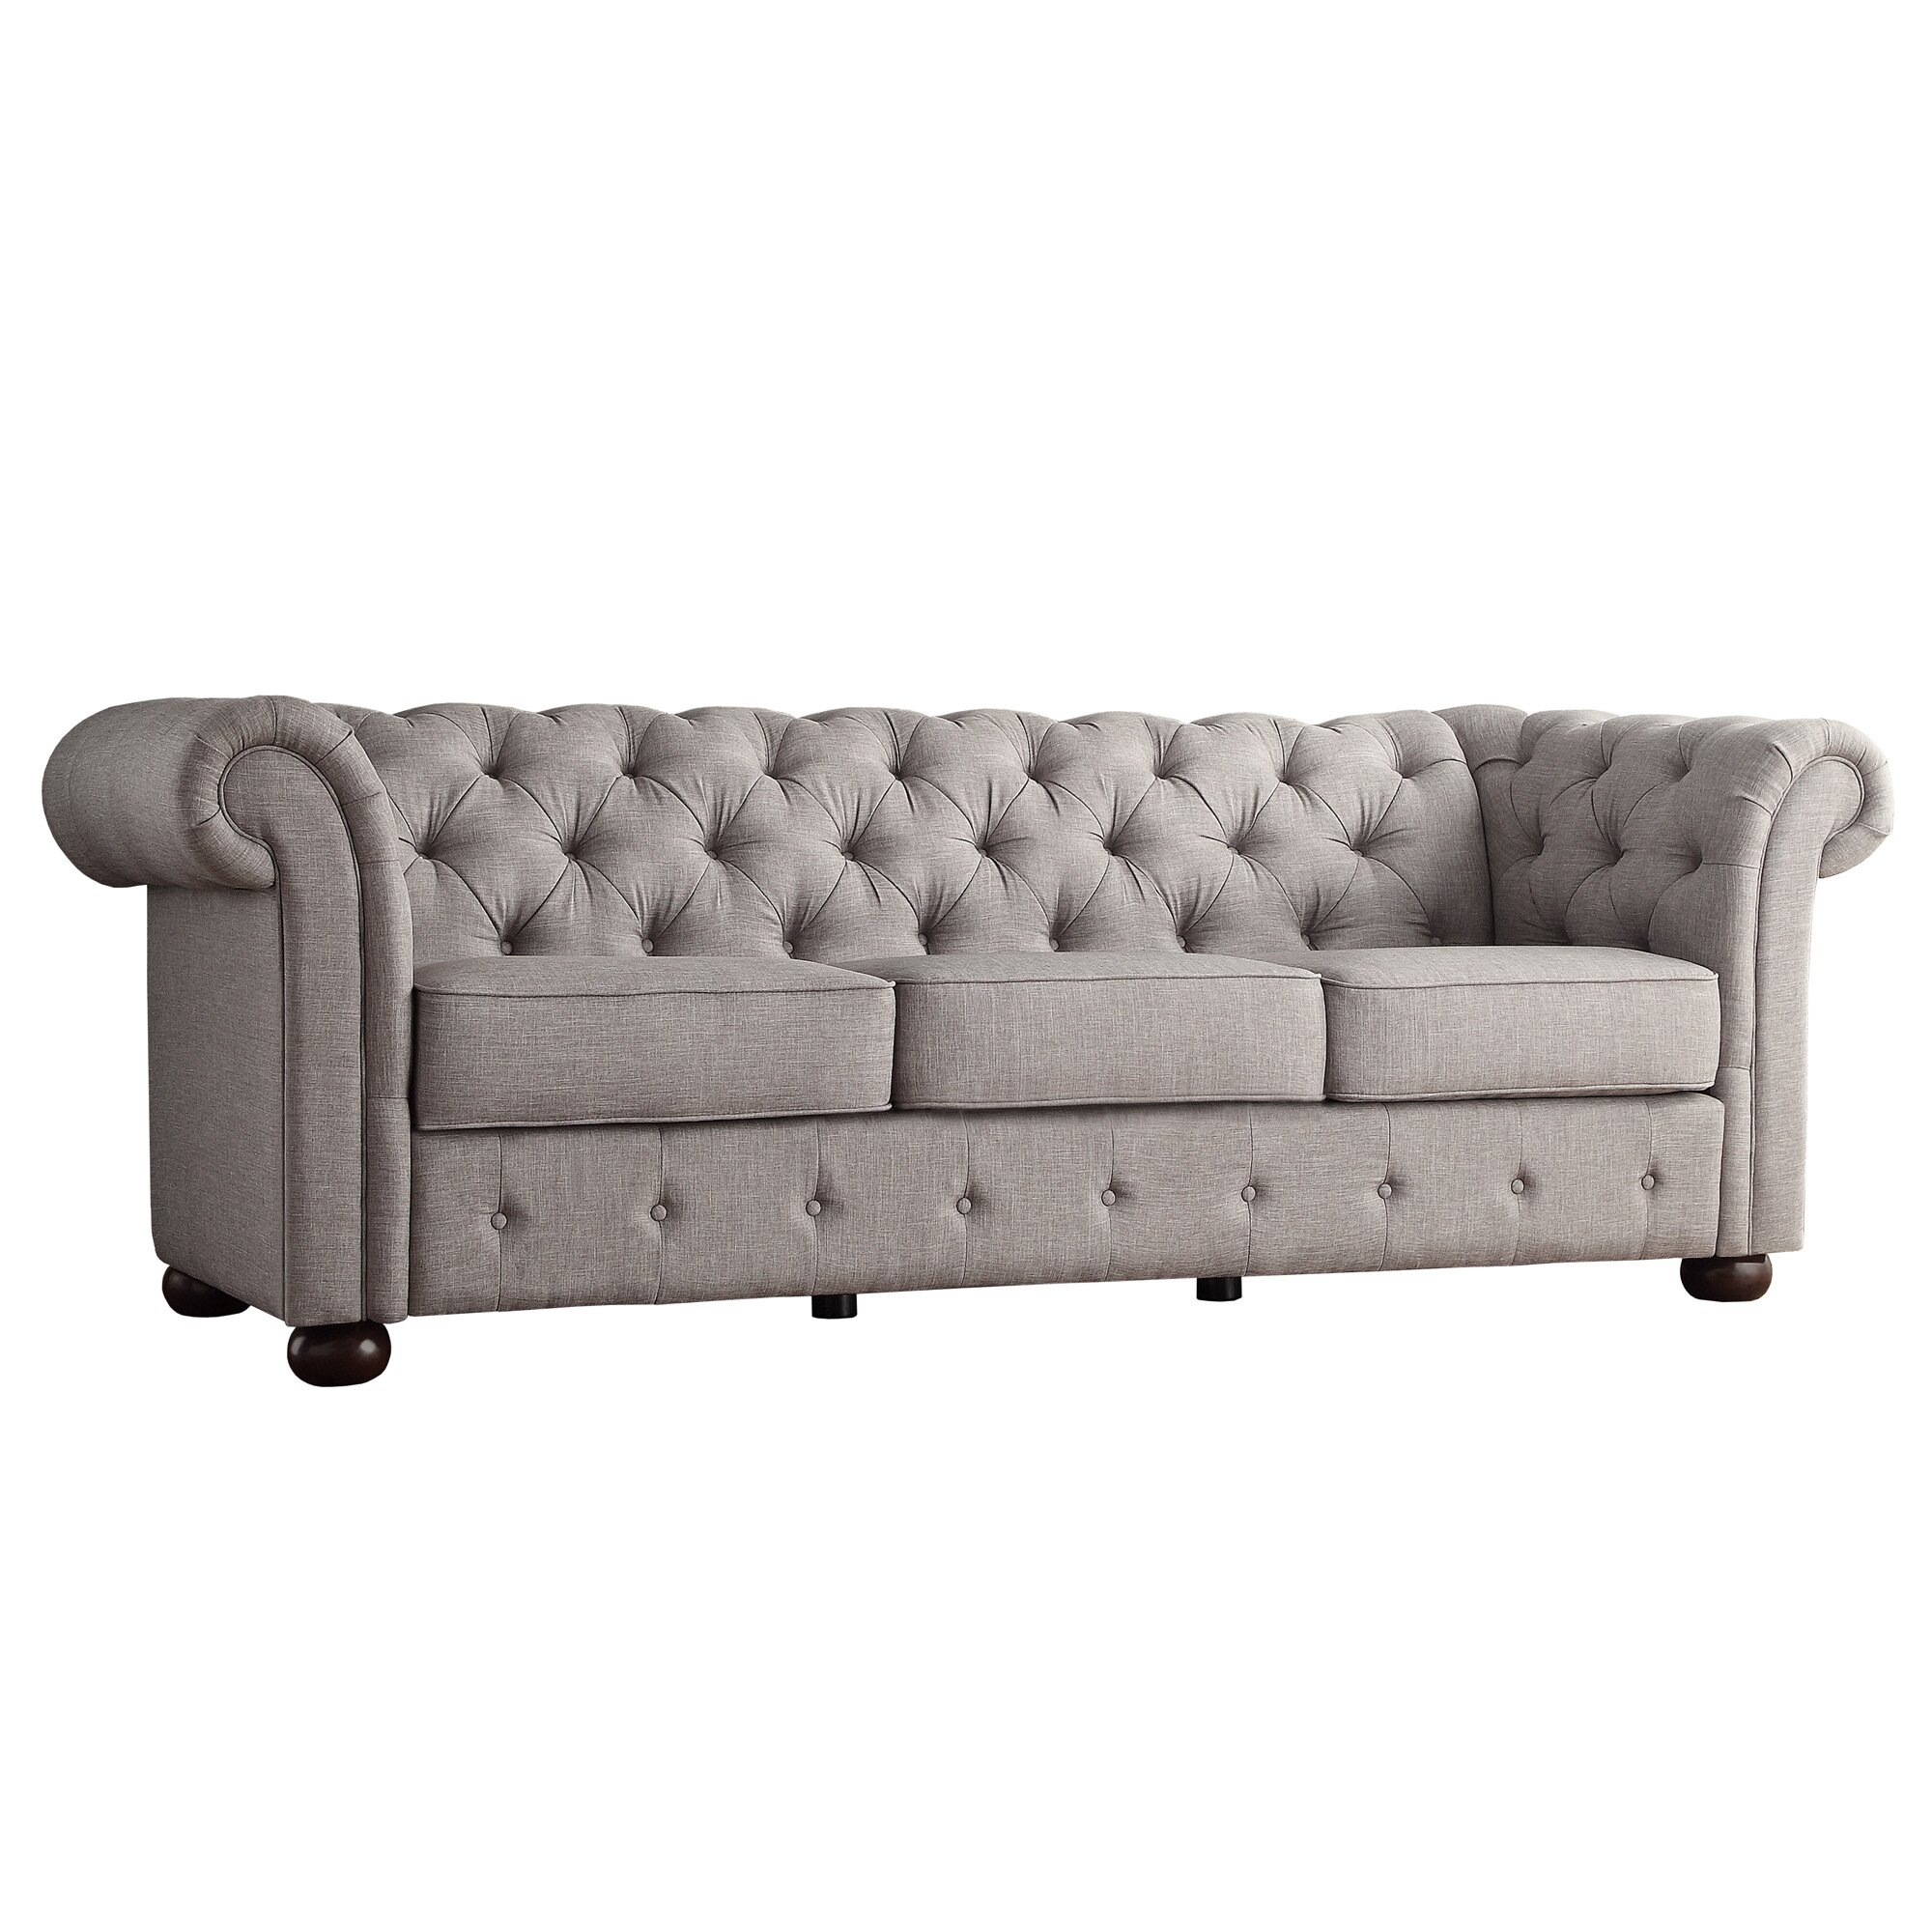 Darby Home Co Conners Tufted Sofa & Reviews  Wayfair